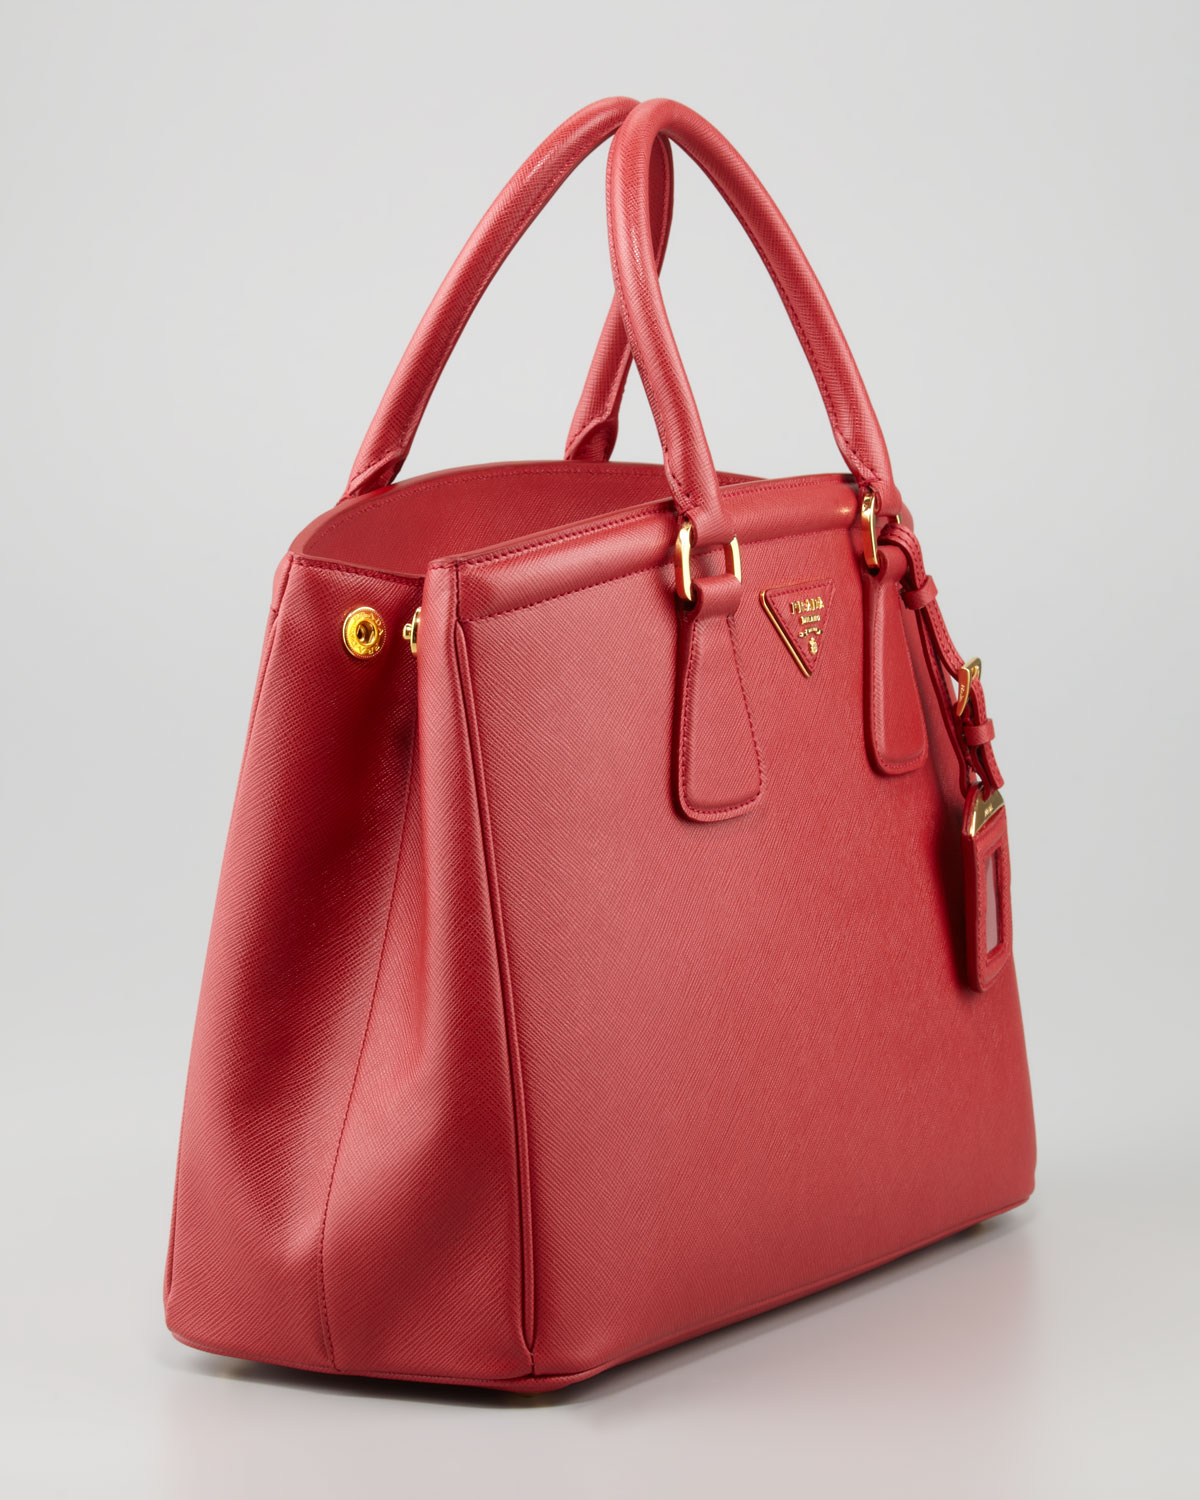 prada inspired handbags - red prada tote, authentic prada handbags for less